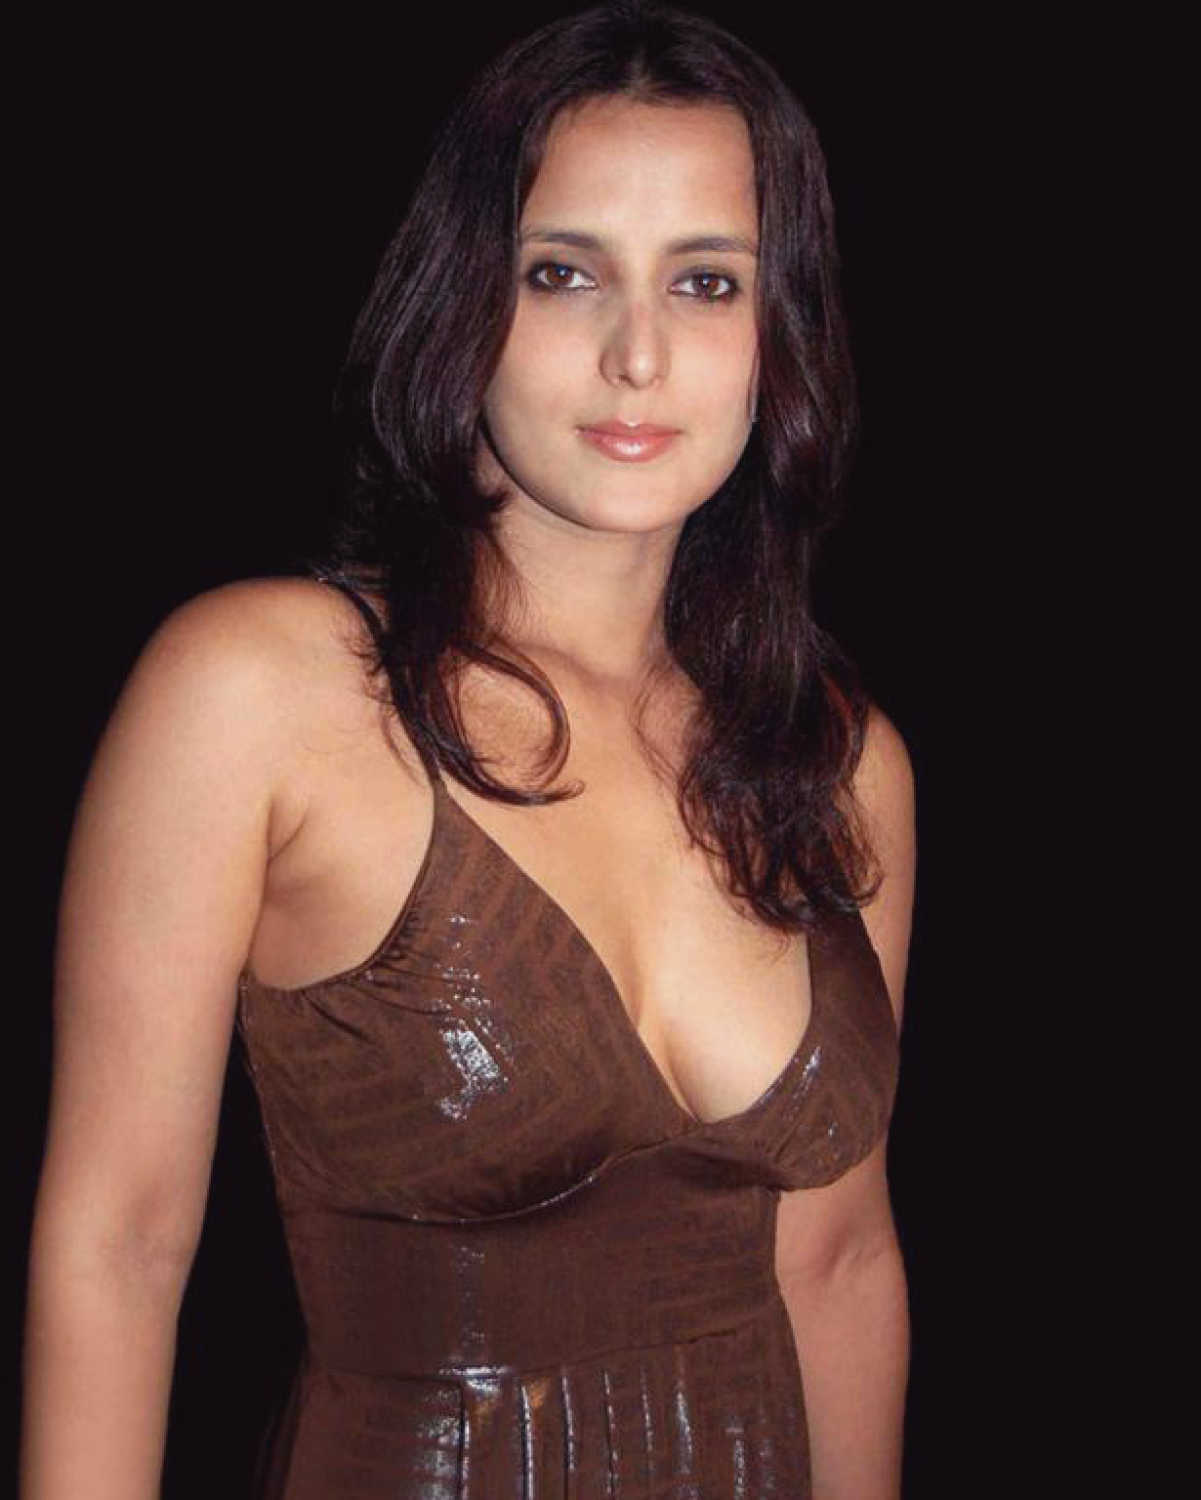 With you Tulip joshi nude photos watch apologise, but